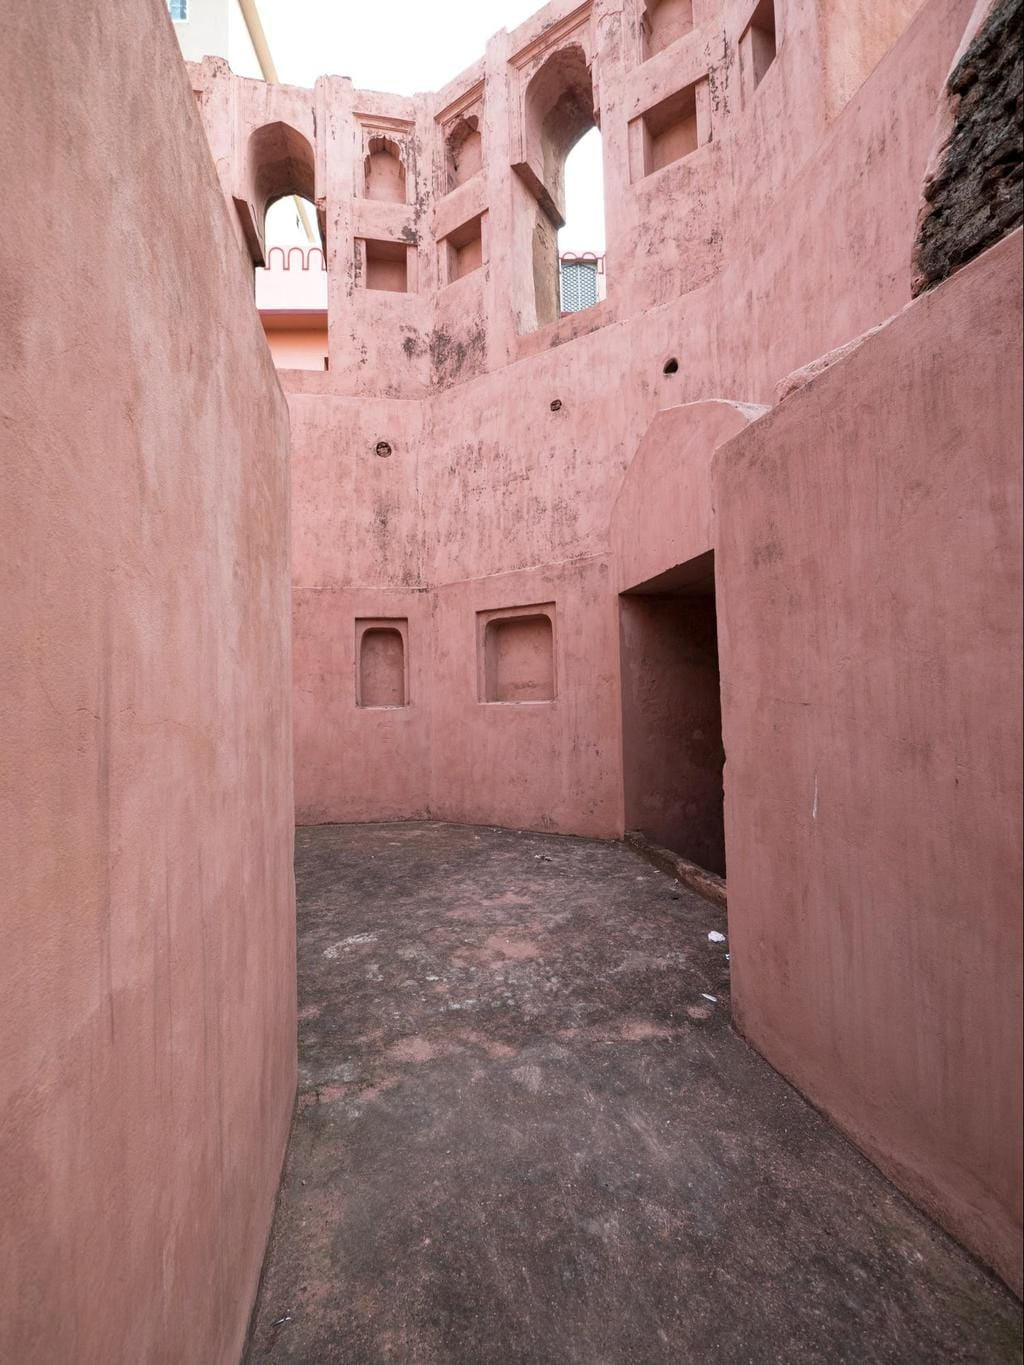 Passages and maze below the bastion of Lalbagh Fort